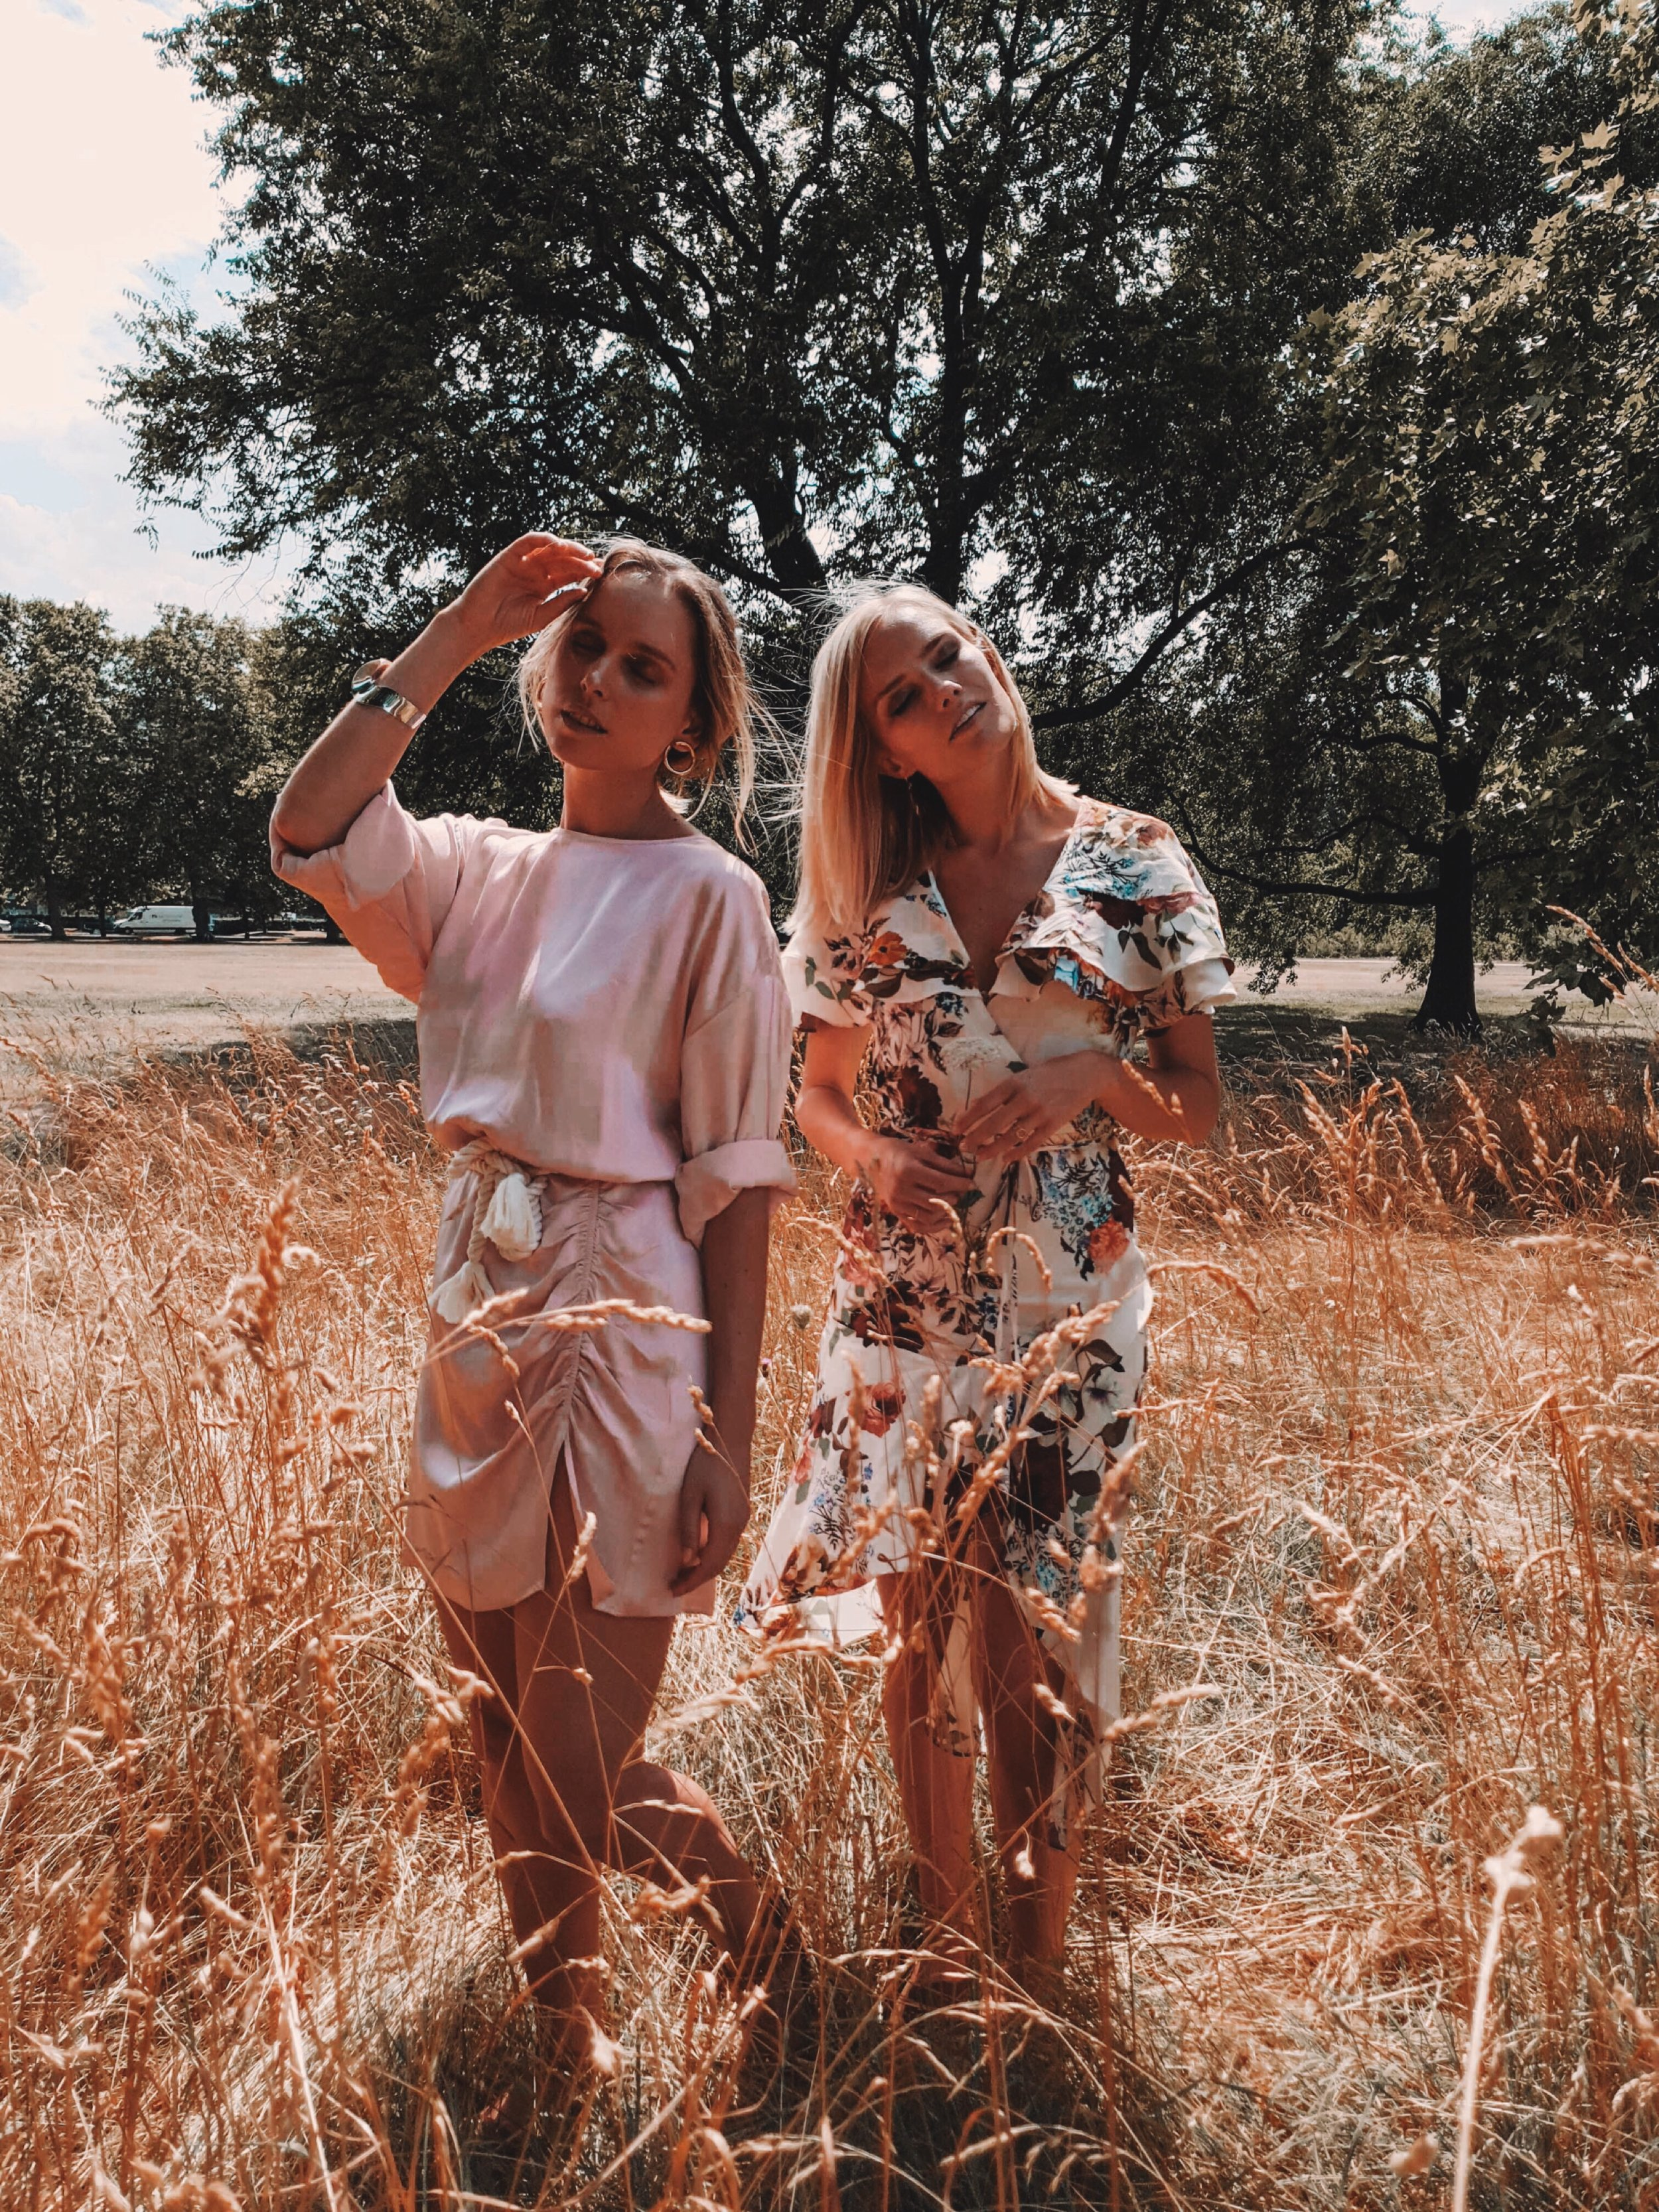 A DREAMY FEEL - We kept to a street style theme, by shooting the imagery so you can see the clothing but also having Sara and Zsnaett in positions that create a 'dreamy' feel. Styling clothes before a shoot is so important - they need to suit the location that you are shooting in as it can really make or break the image! Sara and Zsnanet wore beautiful dresses that were perfect for the location, I wanted the images to feel dreamy and with the dresses being able to move, it was perfect!